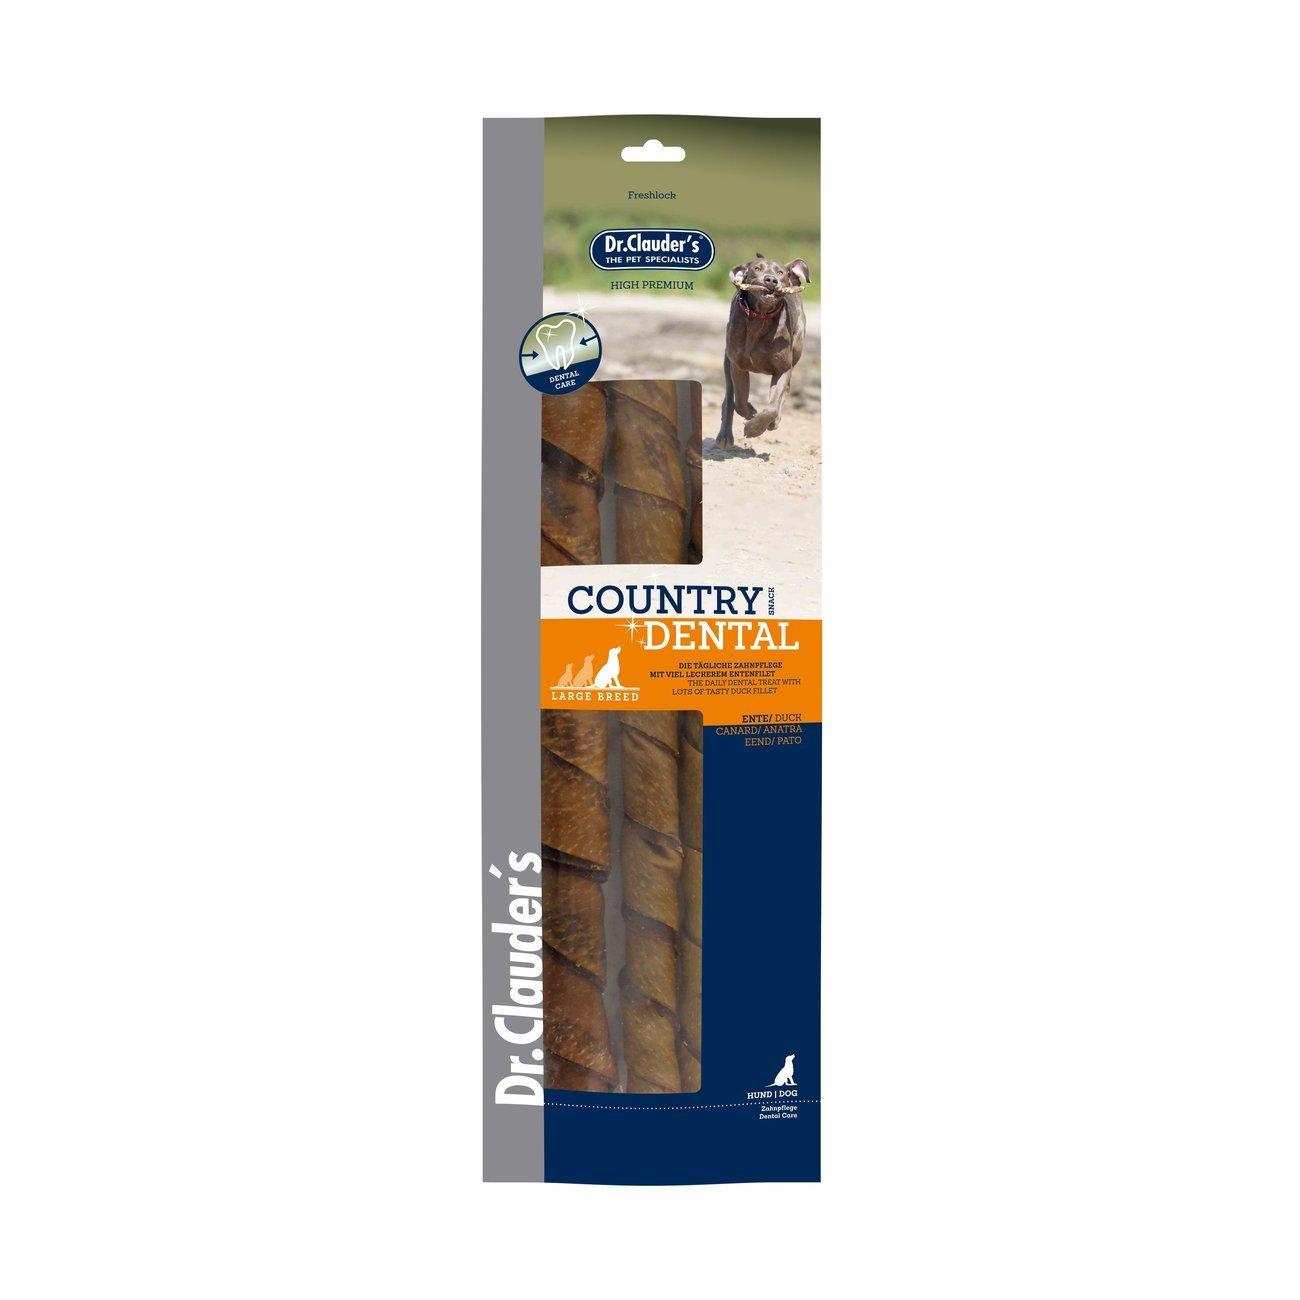 Dr. Clauders Country Dental Hundesnack Large Breed, Bild 2